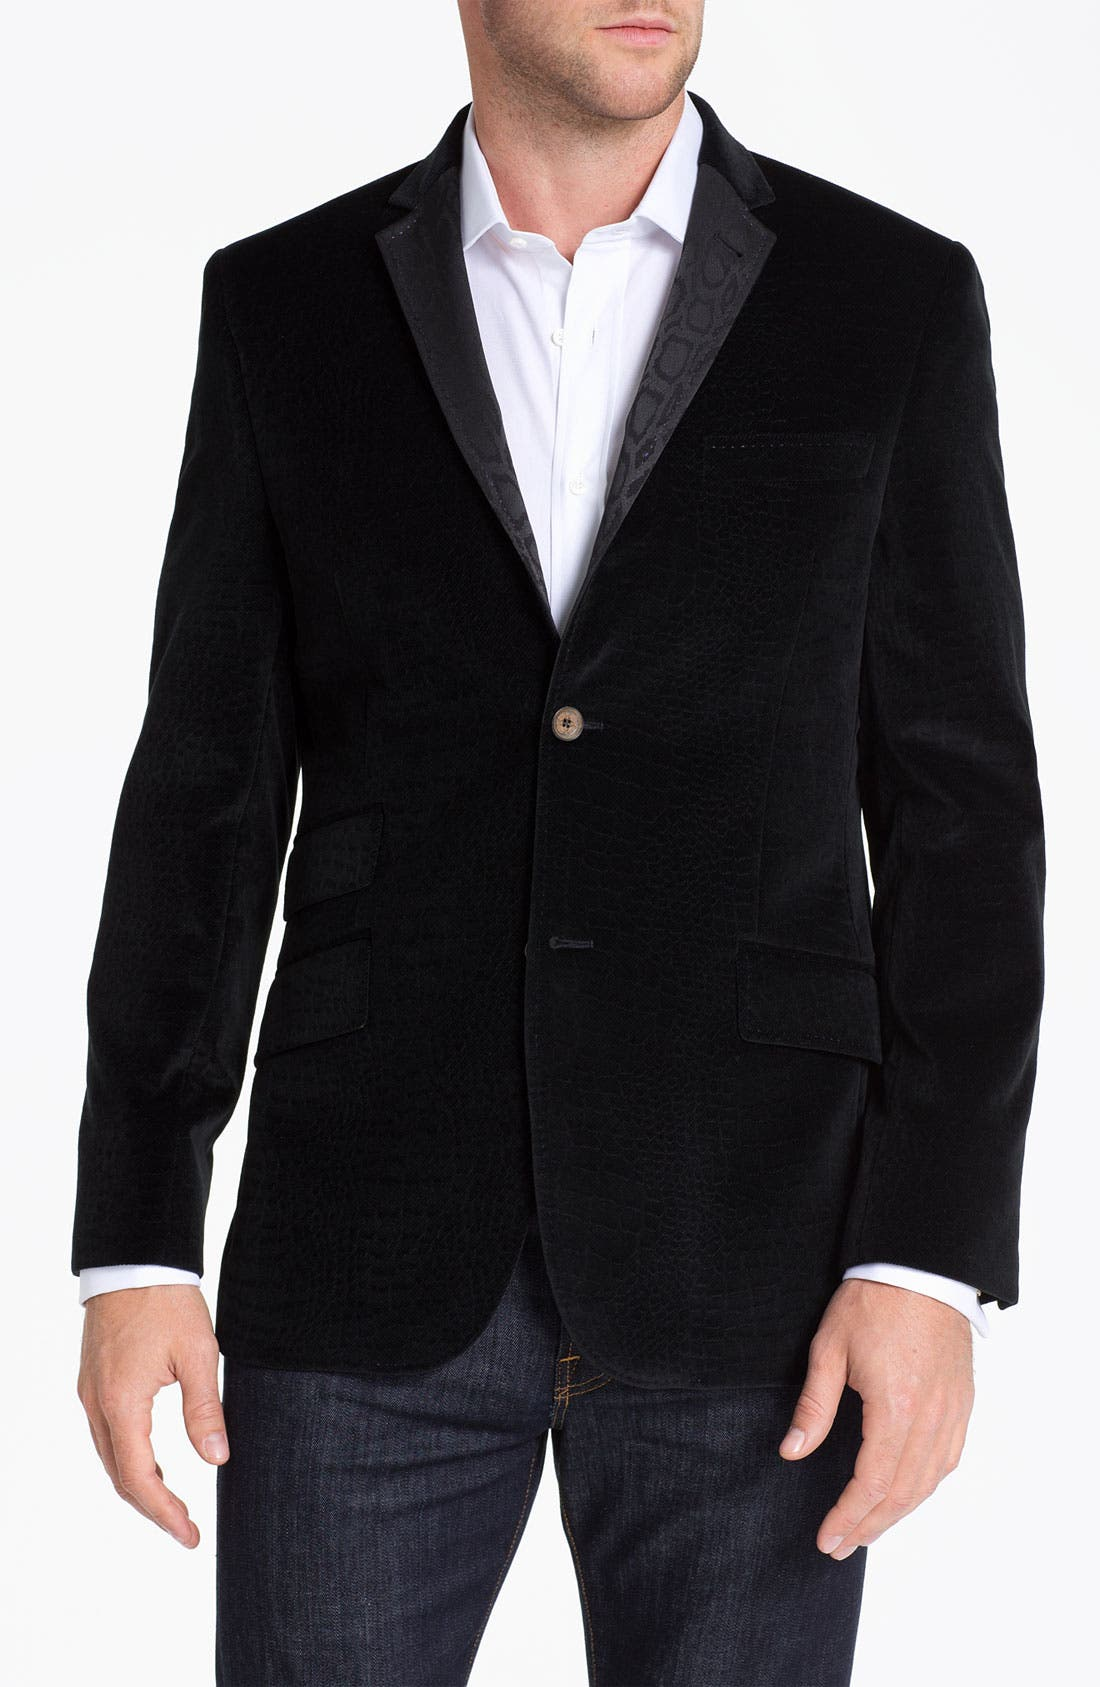 Alternate Image 1 Selected - Ted Baker London 'Global' Trim Fit Textured Sportcoat